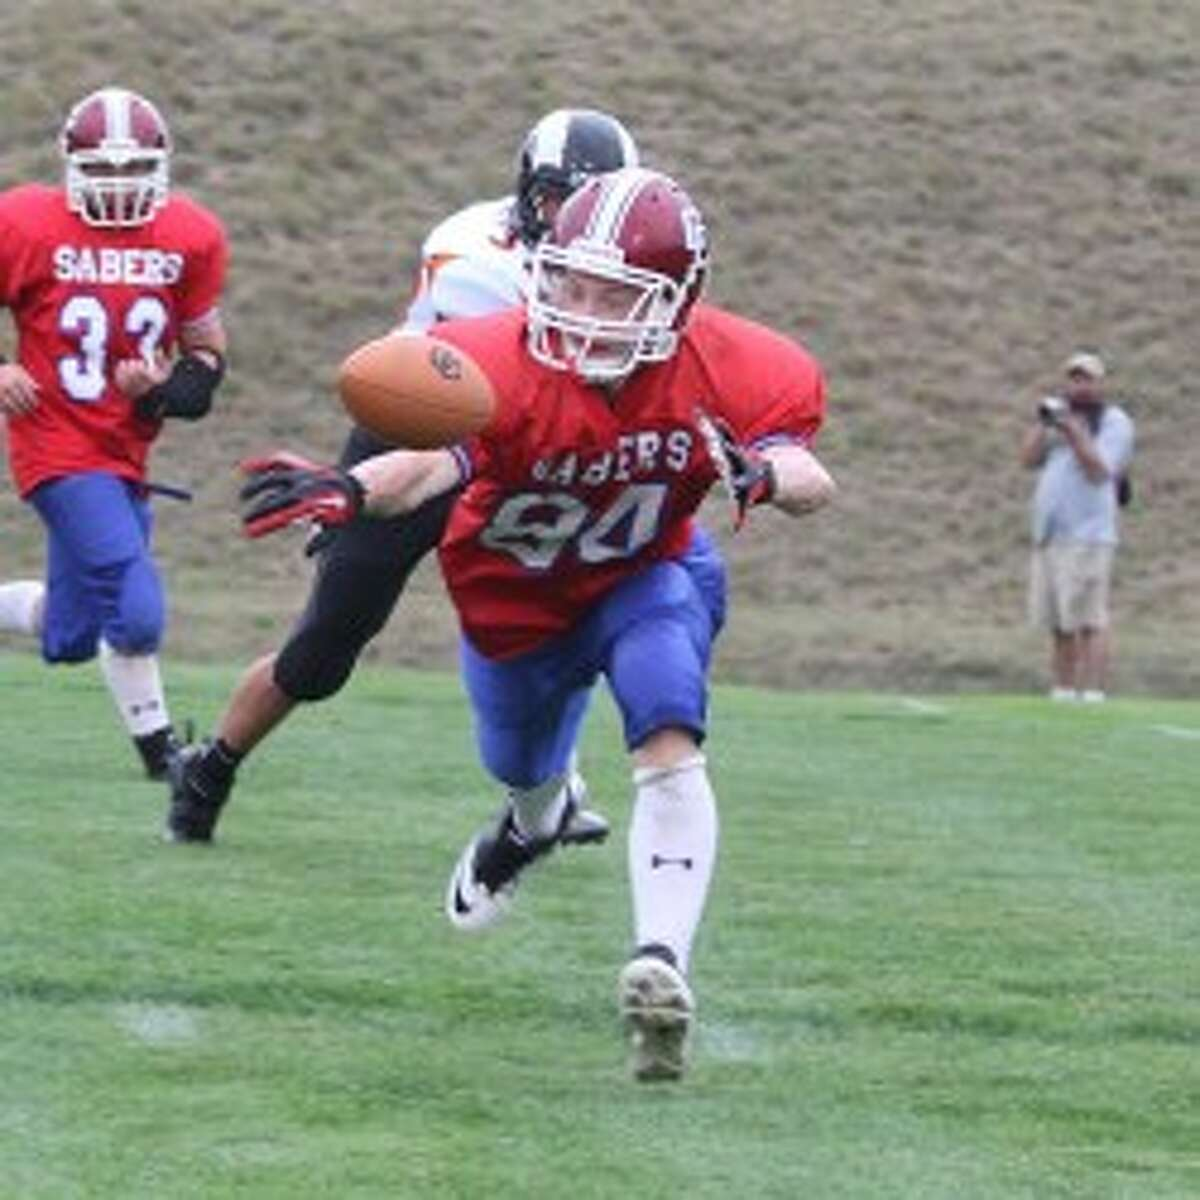 MCC's Justin Feliczak is unable to haul in a pass that's just out of reach. (Matt Wenzel/News Advocate)